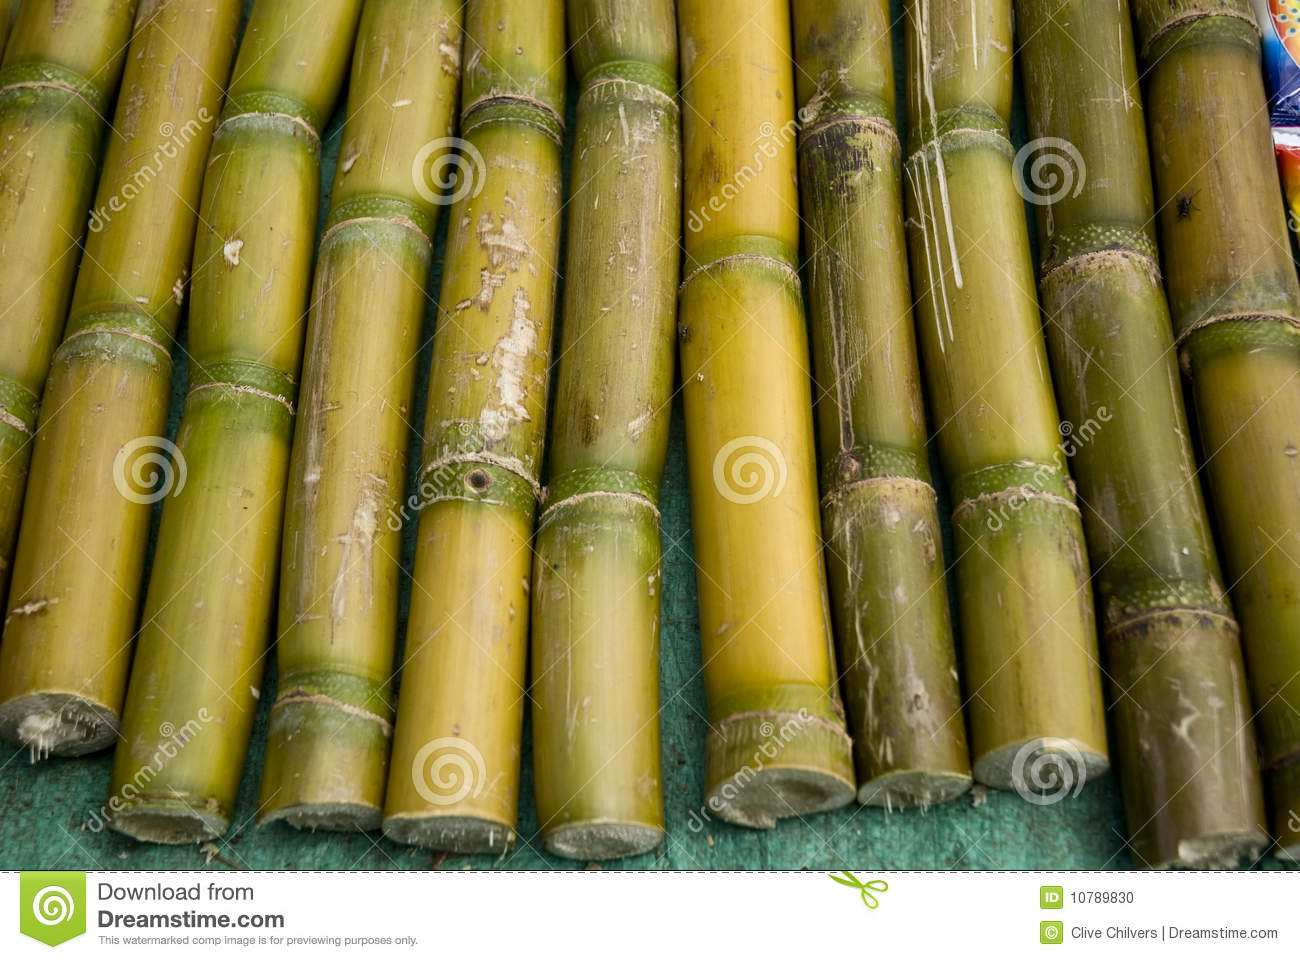 Sugar Cane Sticks For Sale In A Market Stock Photo Image